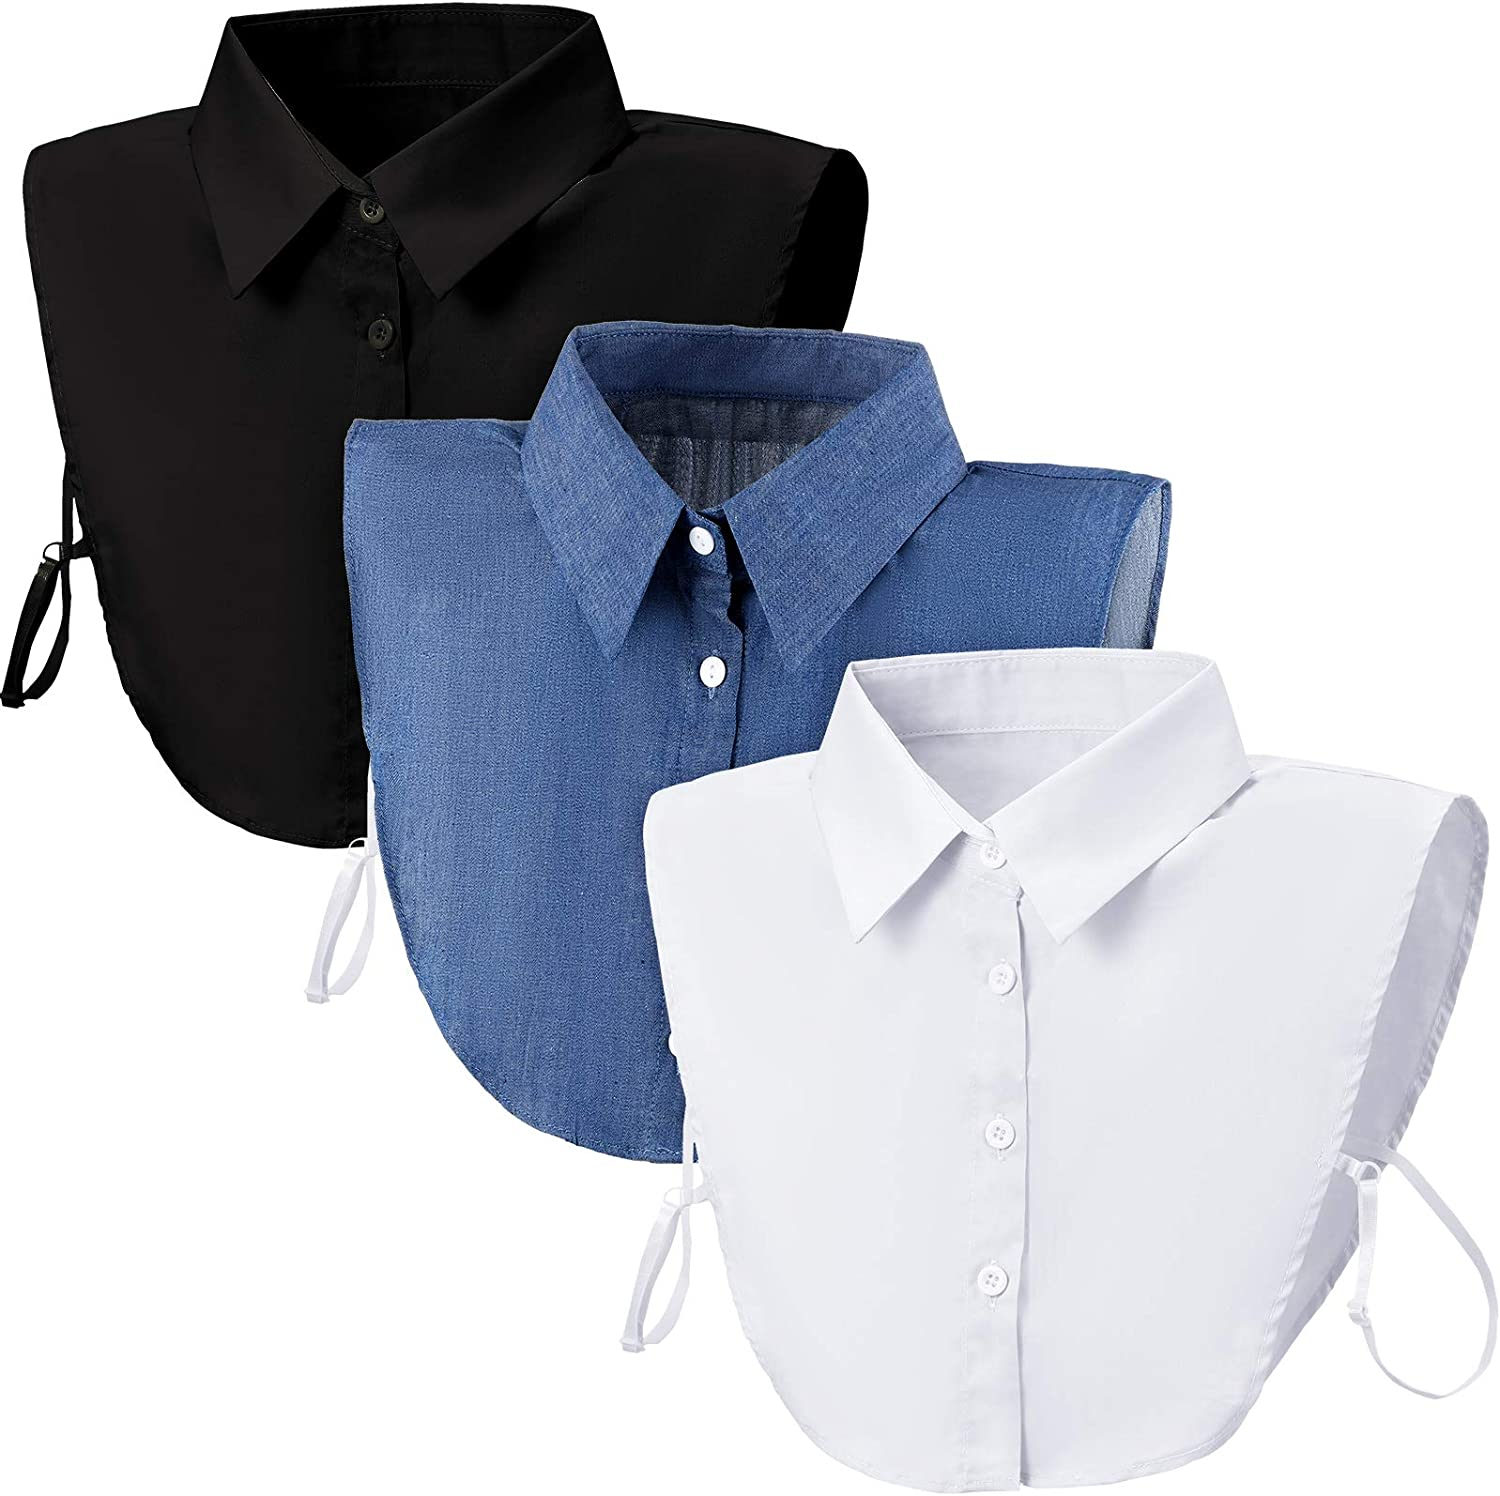 3 Pieces Fake Collars Detachable Blouse Dickey Collars Half Shirts Removable False Collar for Women Girls